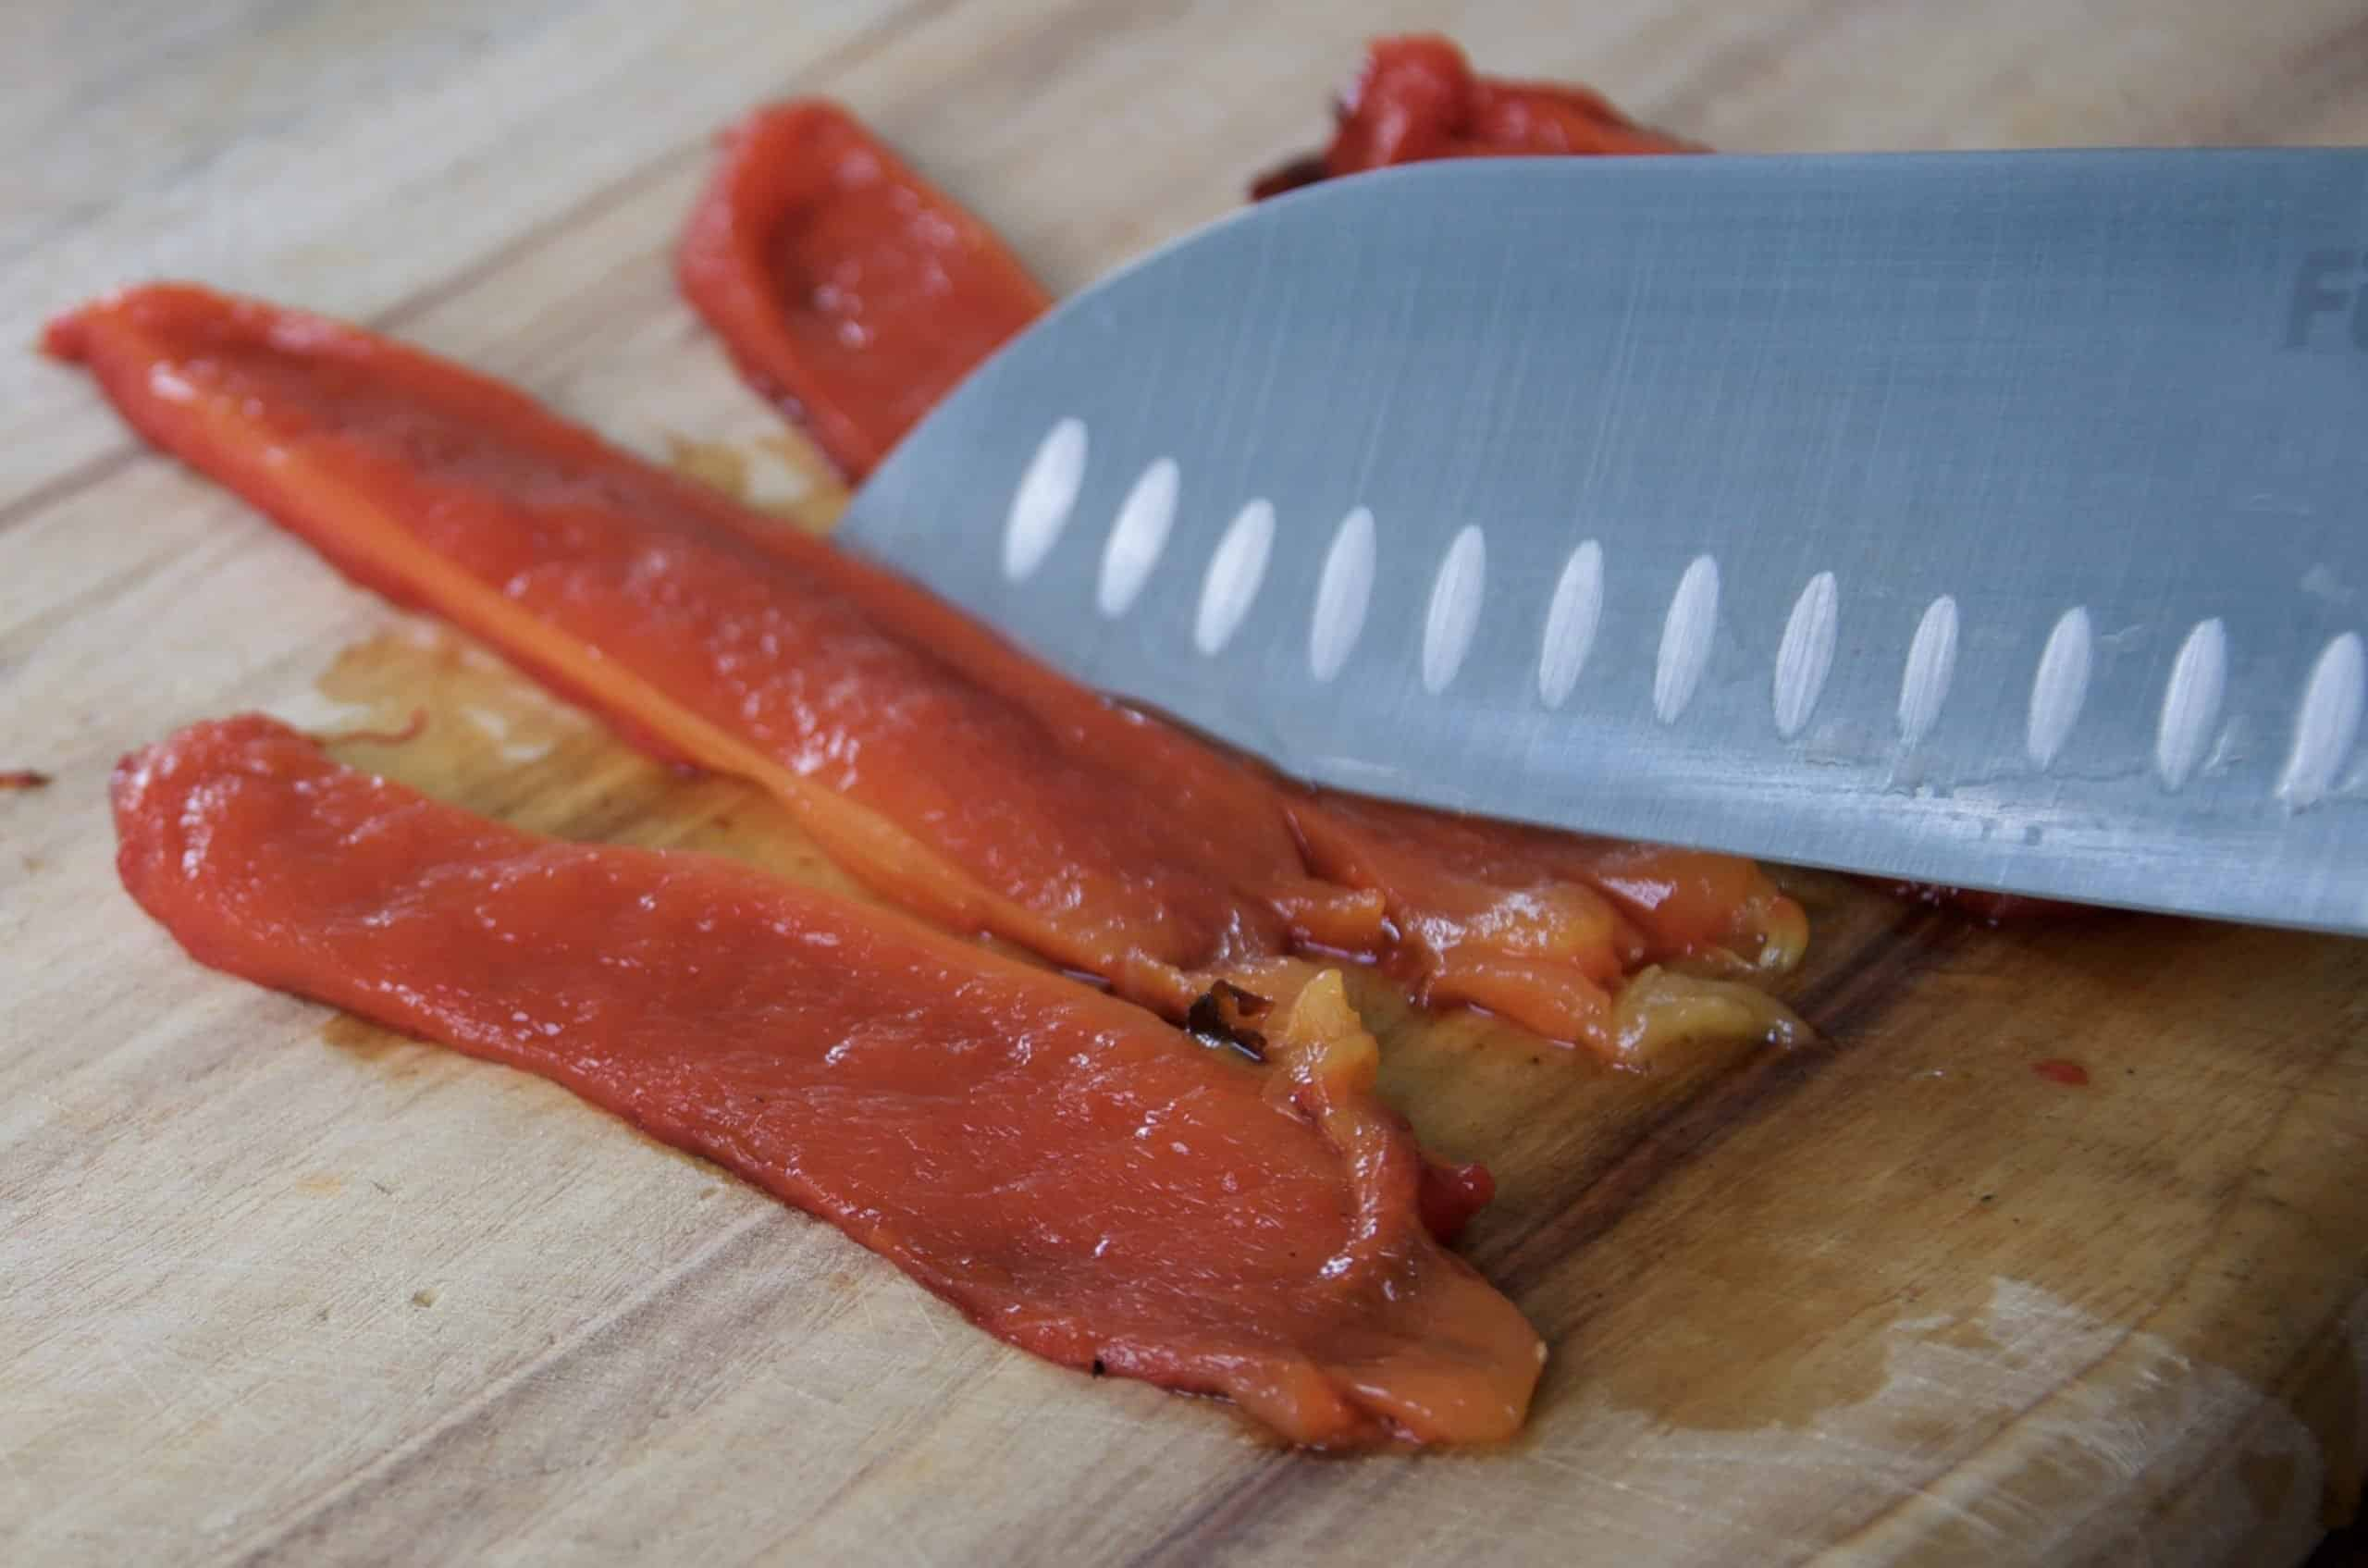 slicing chargrilled bell peppers/capsicum ready to use with silver knife